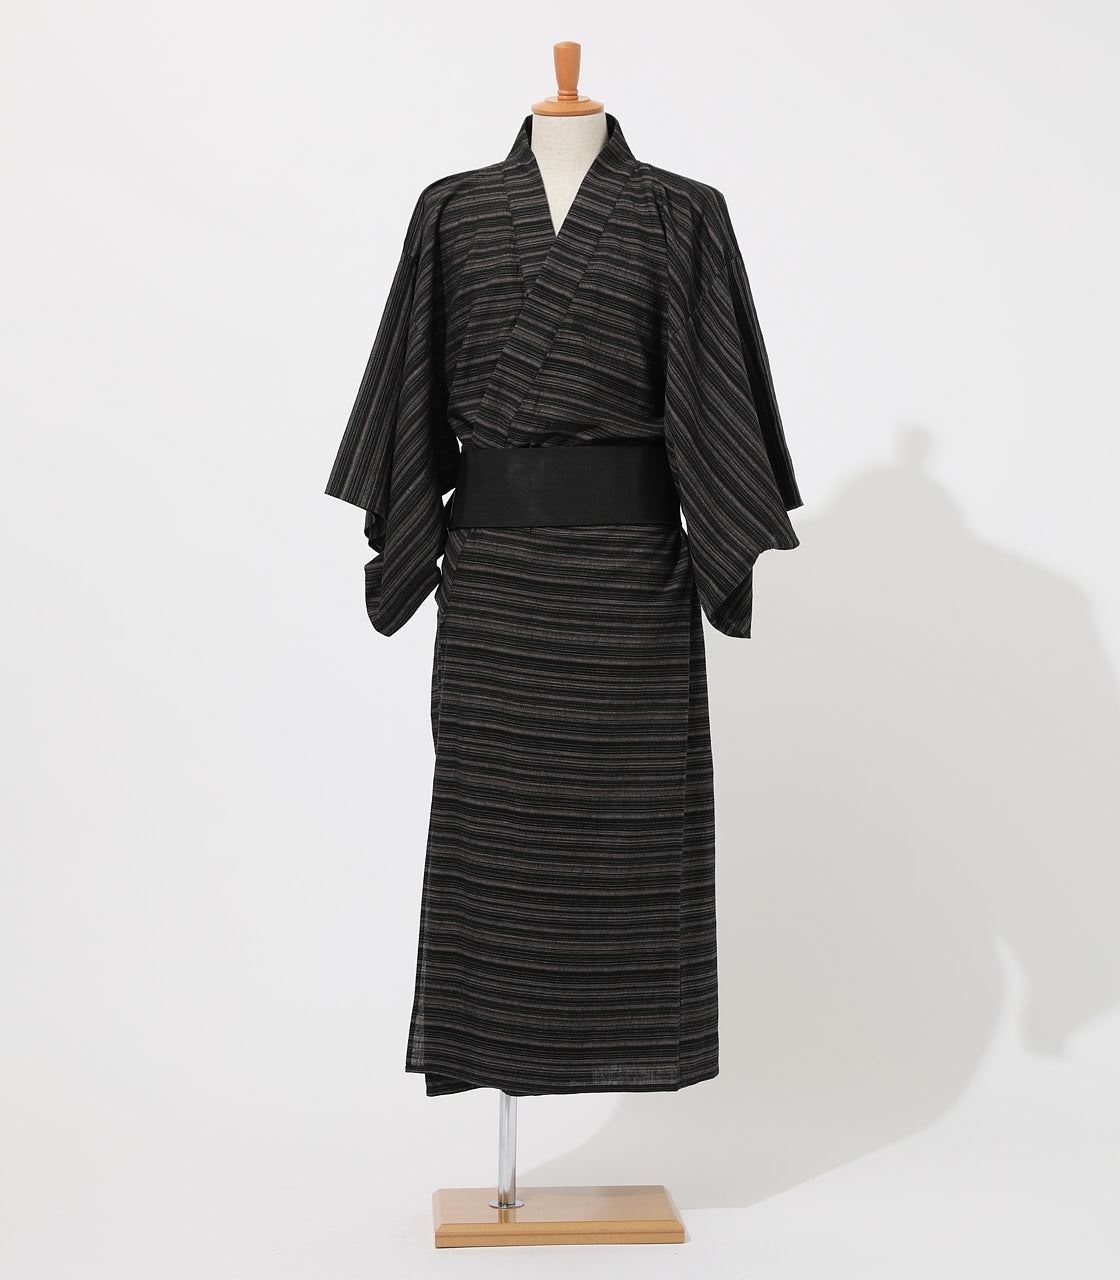 LINEN COTTON YUKATA 詳細画像 BLK 2